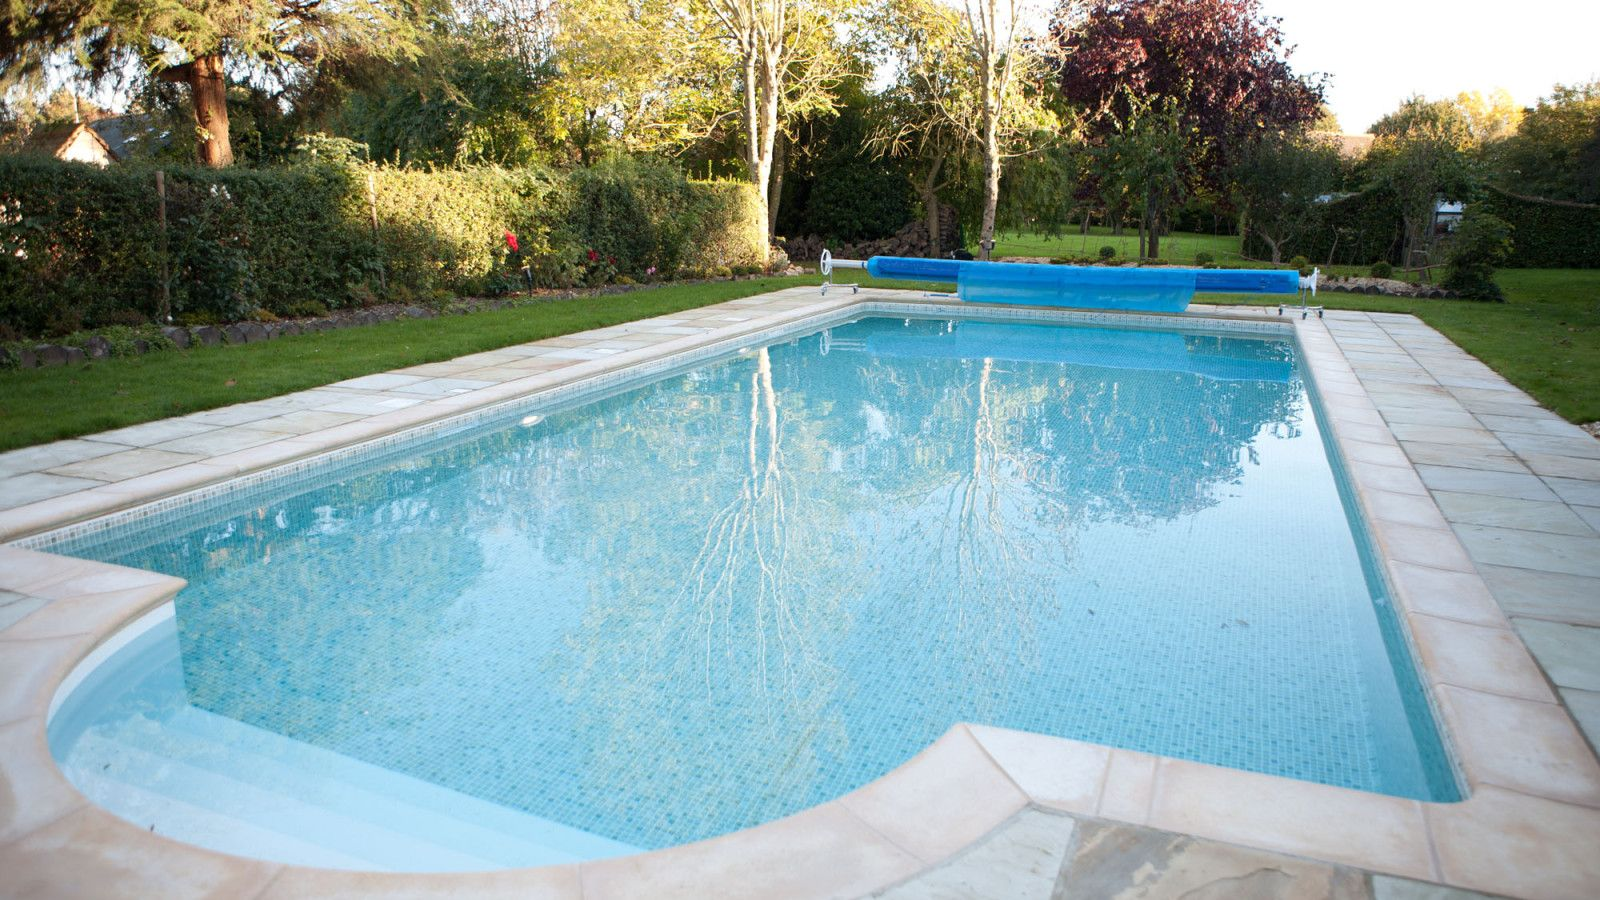 Shopwyke Manor Large Uk Holiday Home The Big Cottage Company Kate Tom S Outdoor Heated Pool At Shopw Big Cottages Amazing Swimming Pools Holiday Home